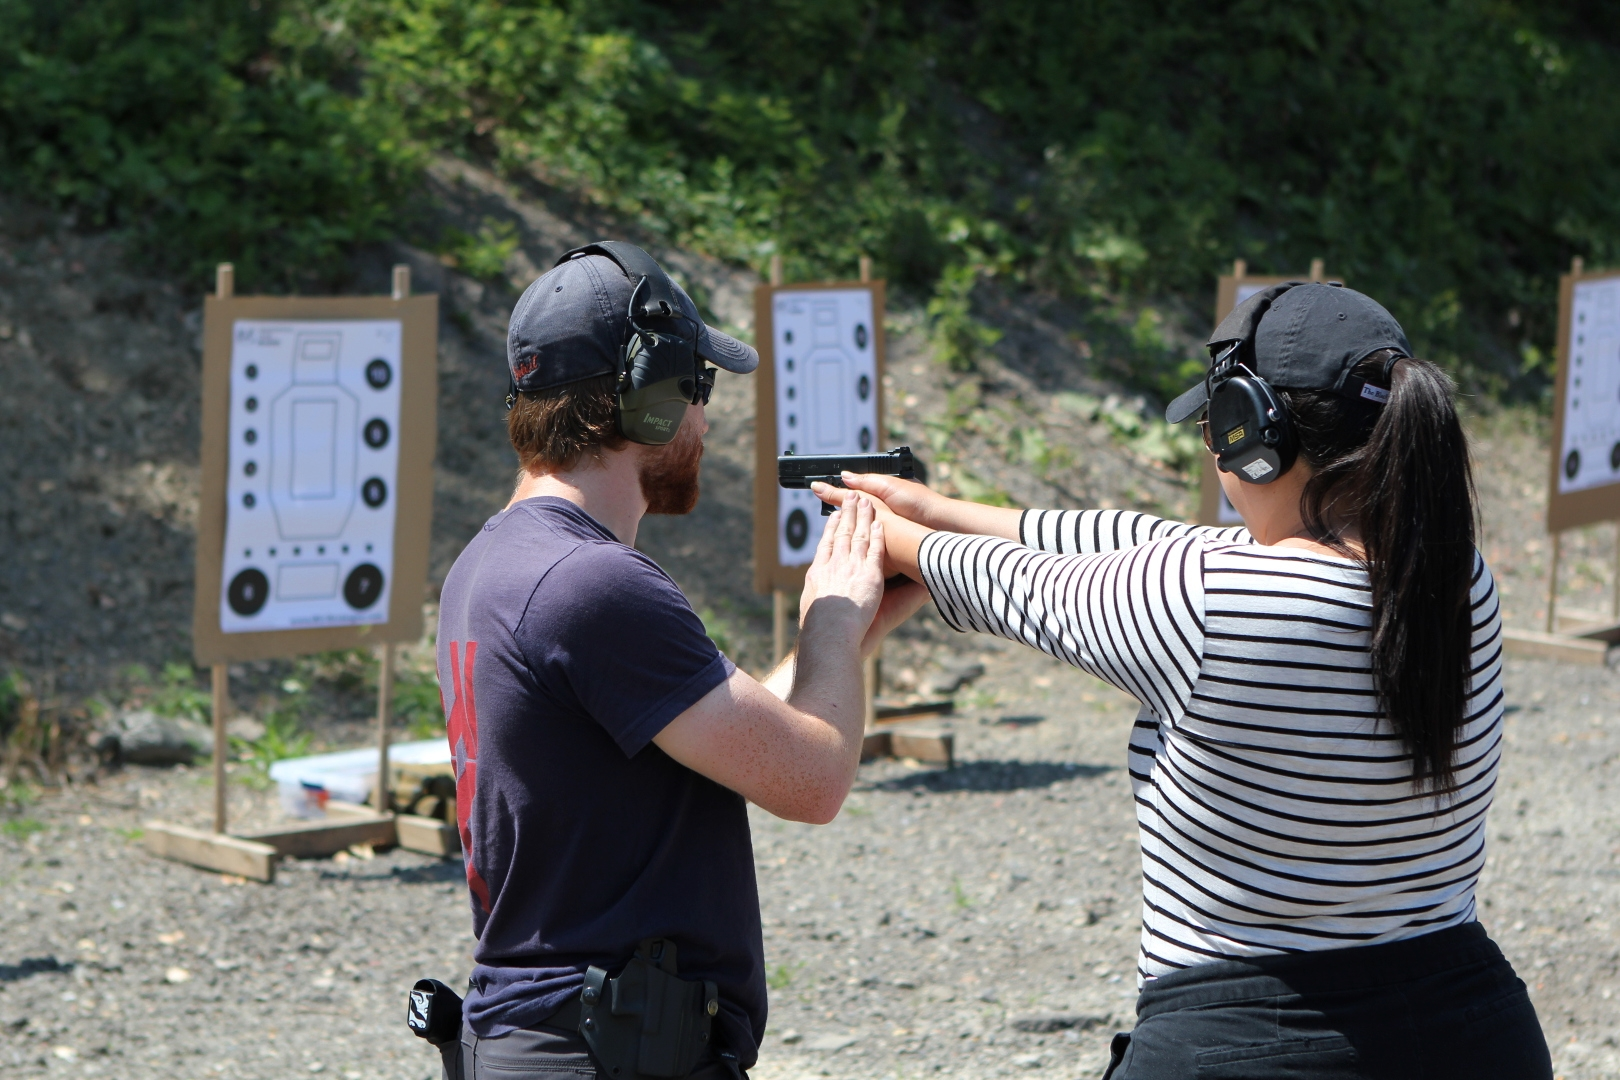 Learn about common shooting mistakes